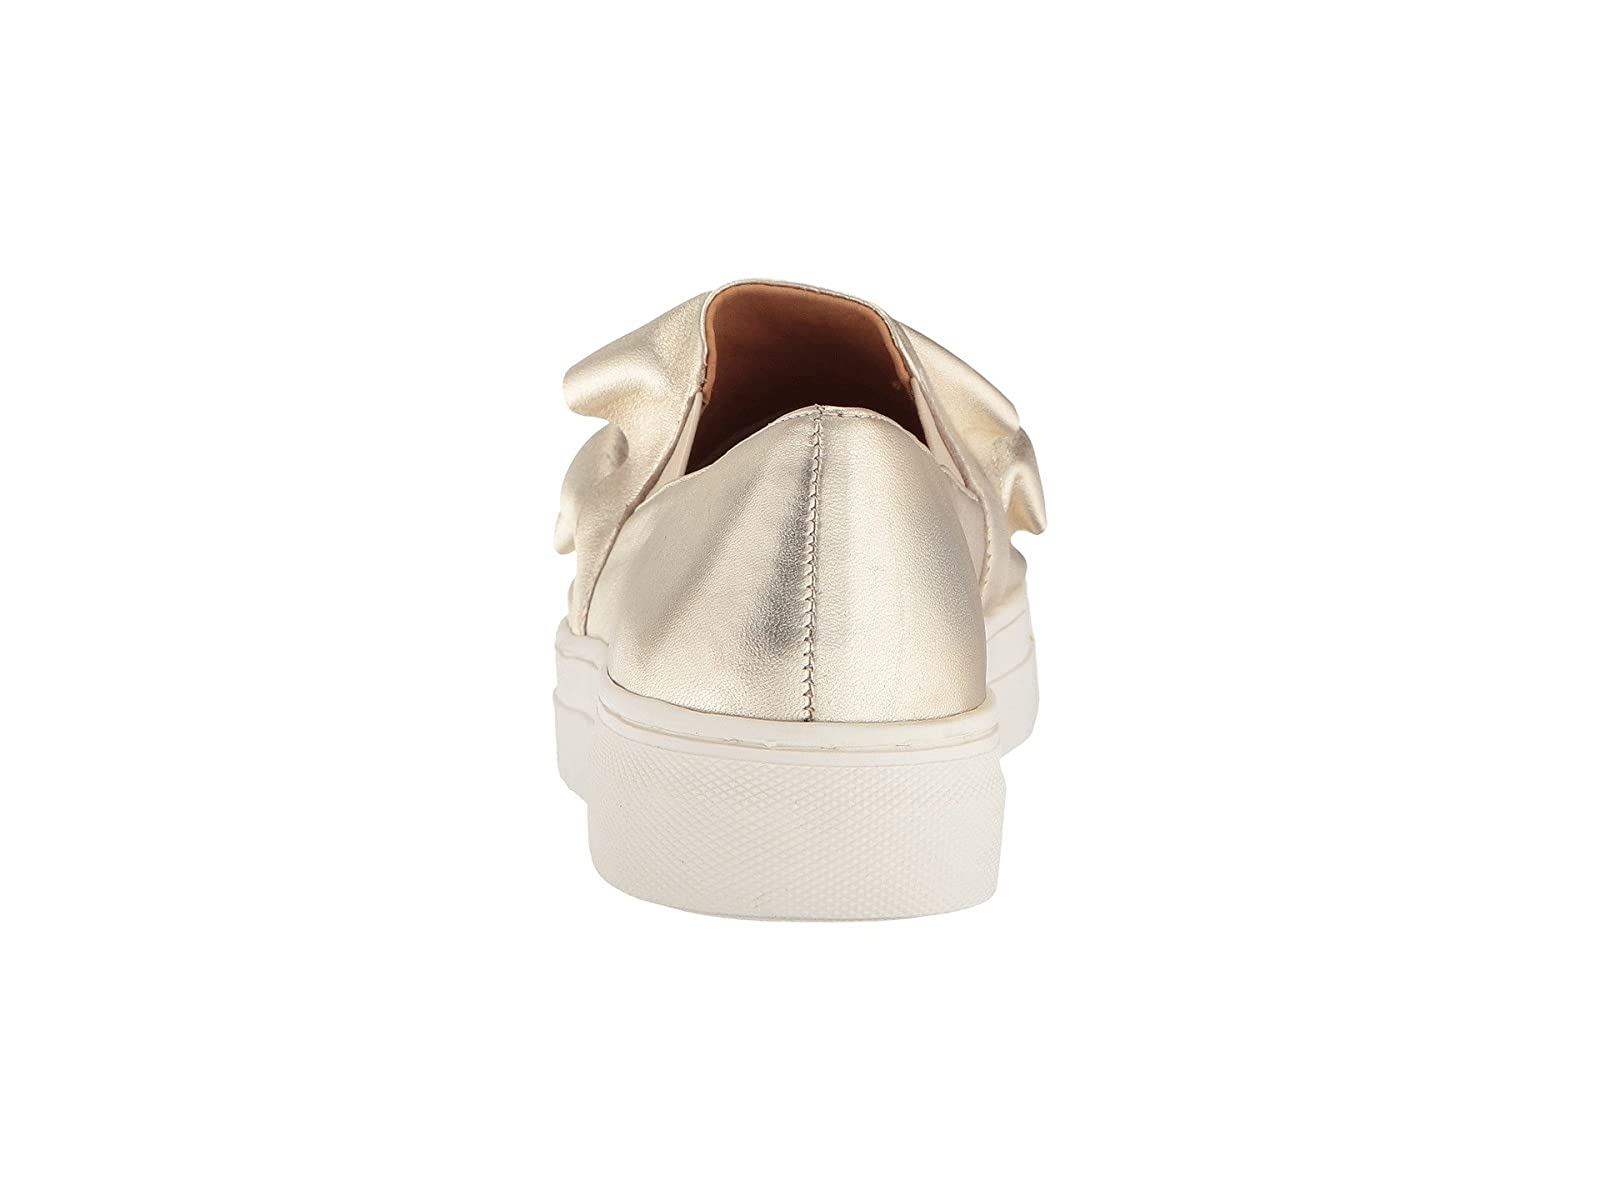 Gentlemen/Ladies Seychelles Quake   List of tidal shoes shoes shoes 7f888c